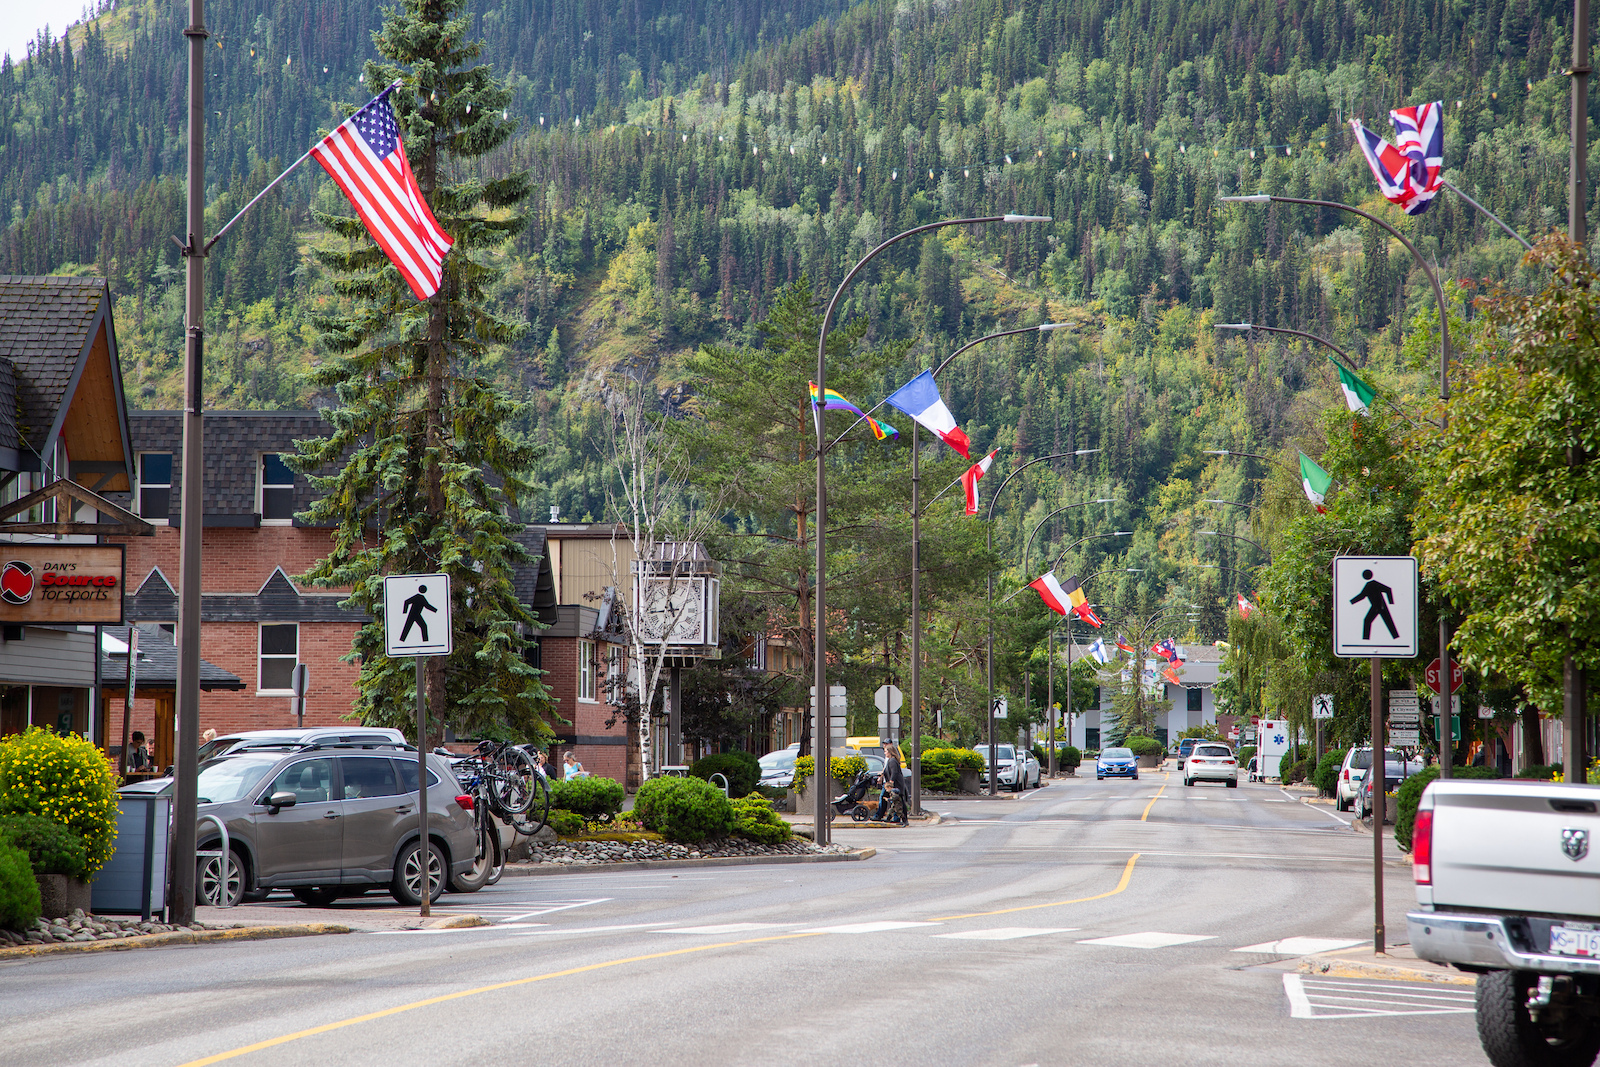 The main drag in Smithers